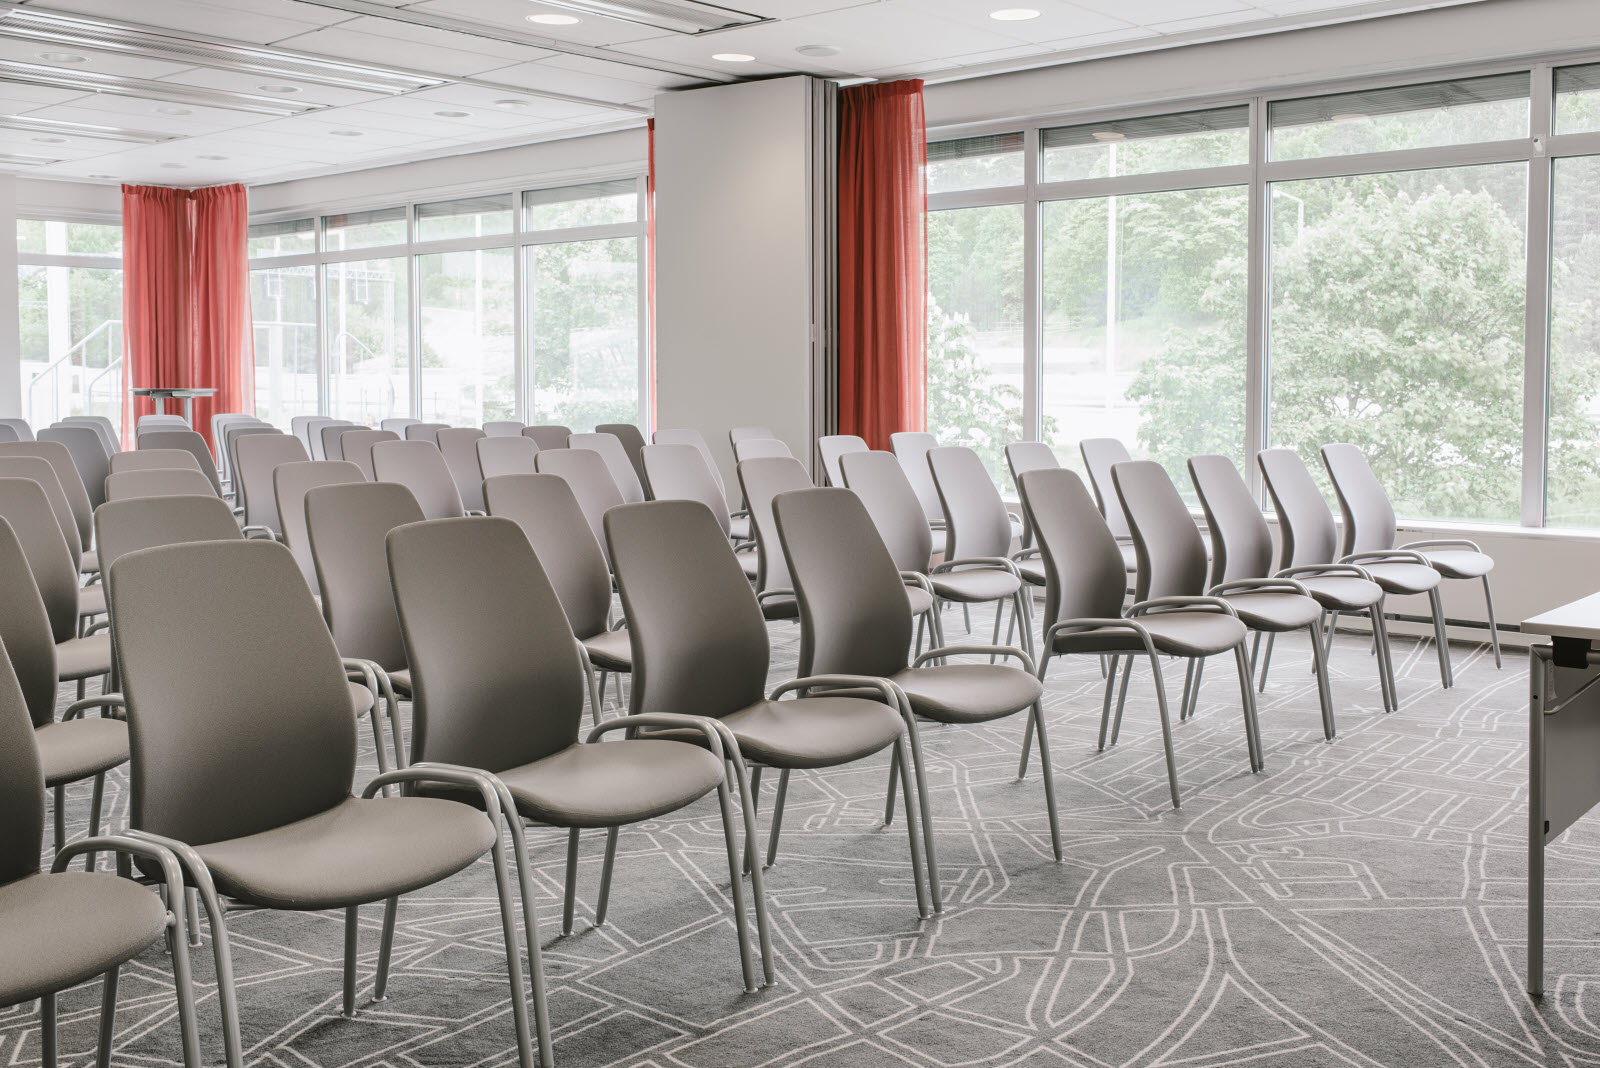 Scandic-Jarva-Krog-Conference-Room-Stockholm-Oslo.jpg